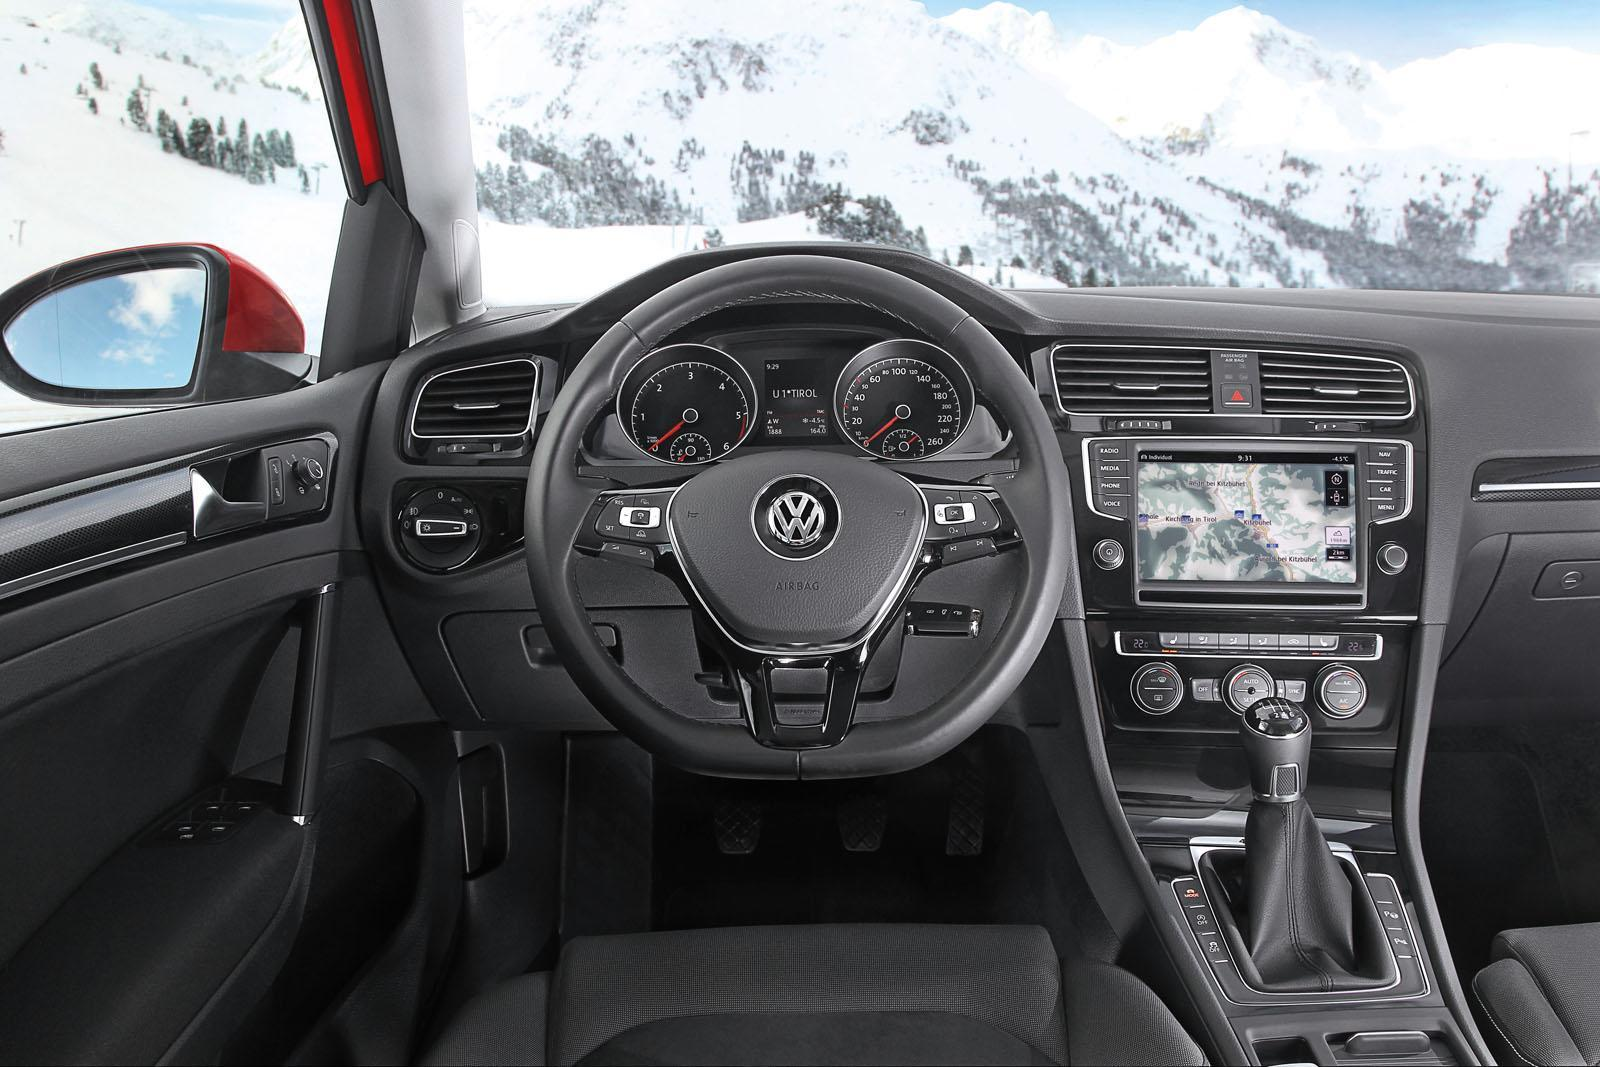 Vw golf 7 4motion 2013 la transmission 4x4 en d tails for Interieur golf 3